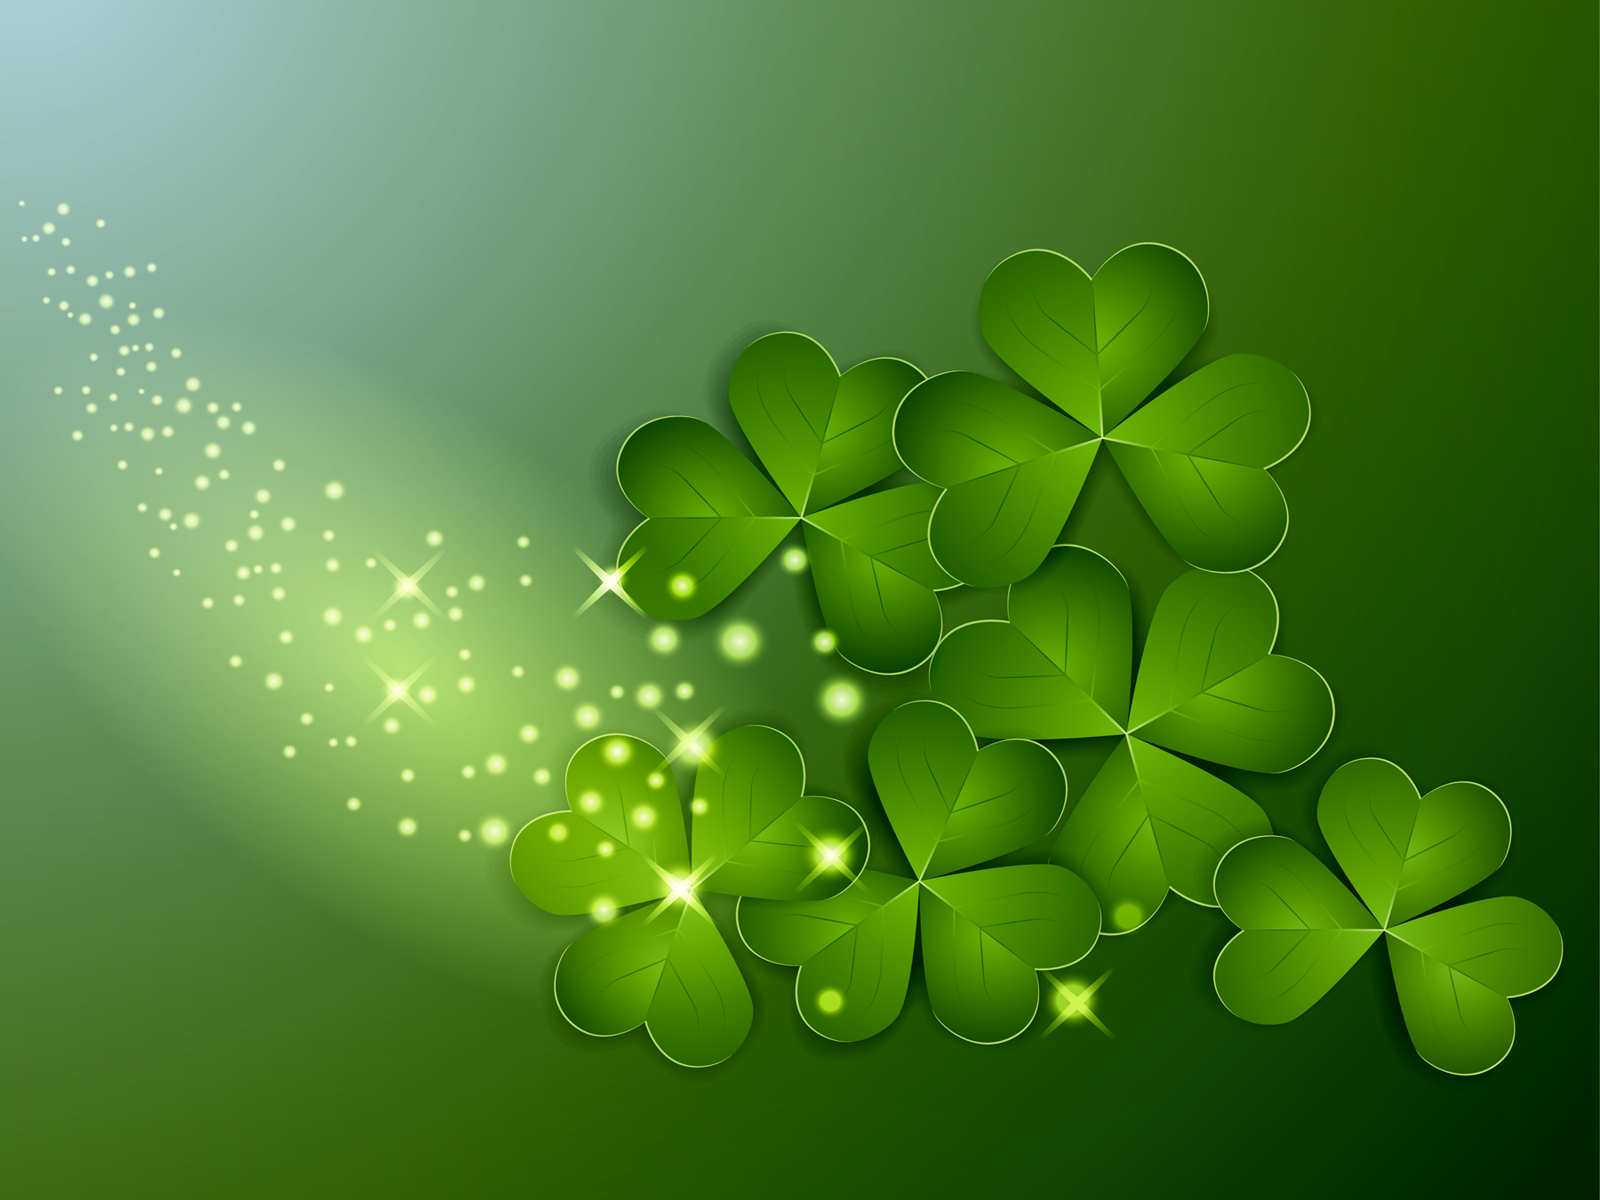 St Patricks Day Free Wallpaper